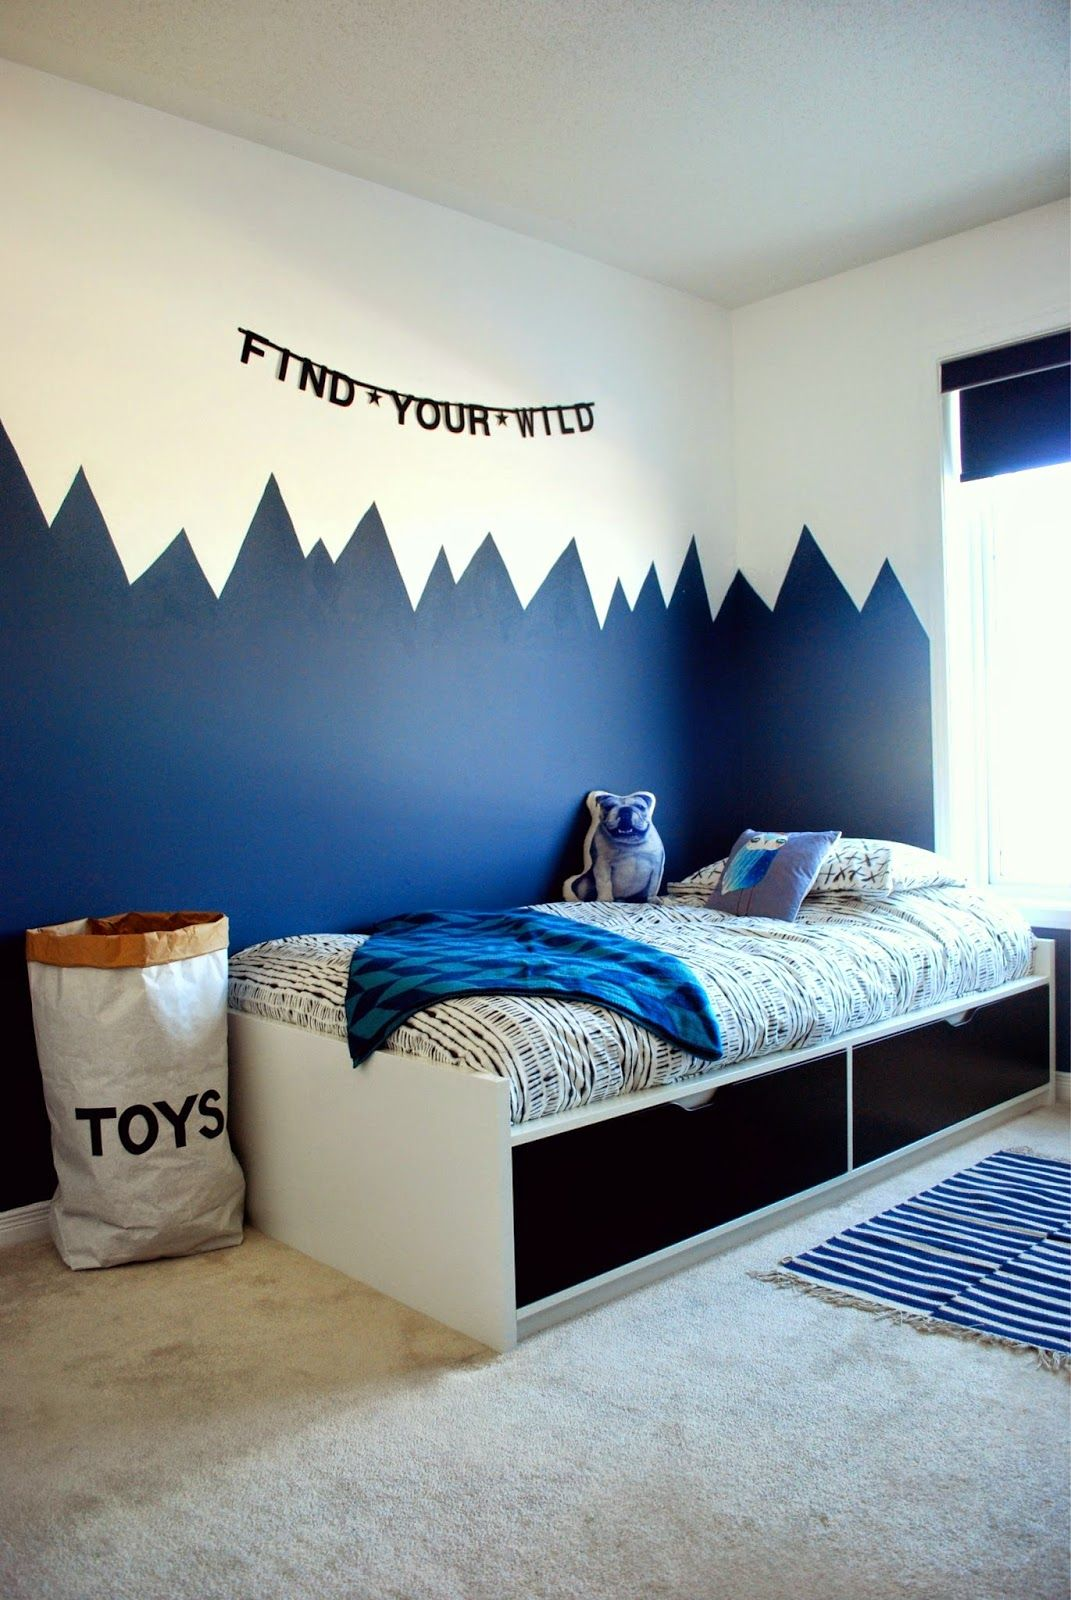 Teenagers Room Paint Ideas Http Thebooandtheboy 2015 03 The Boys New Room